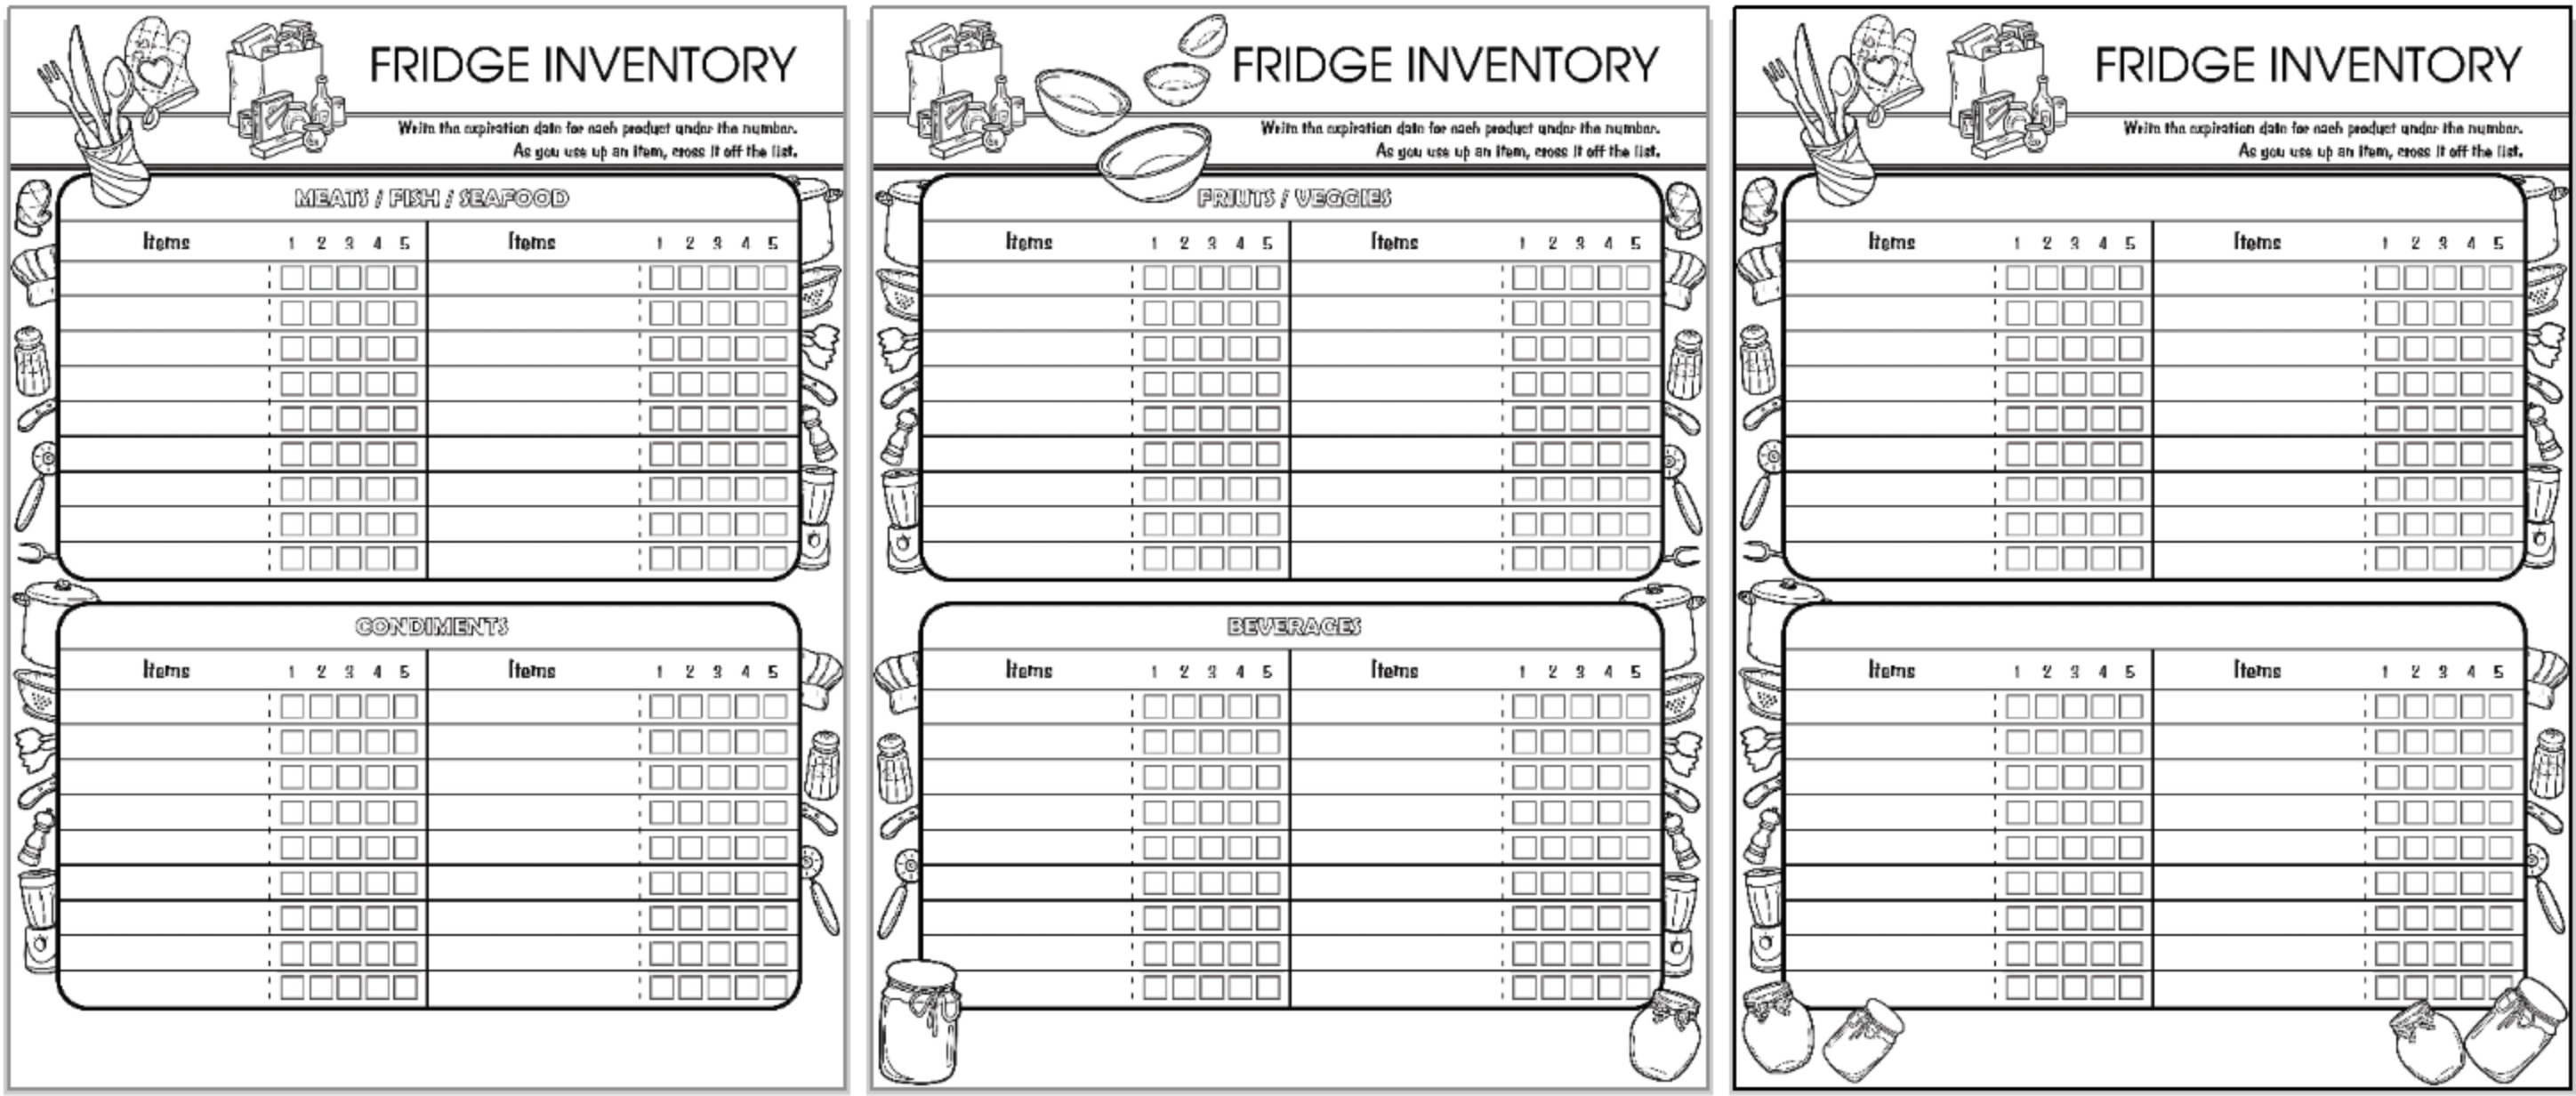 Printable Household Inventory Binder - Pantry, Freezer, Kitchen, and Household Items Inventory Sheet